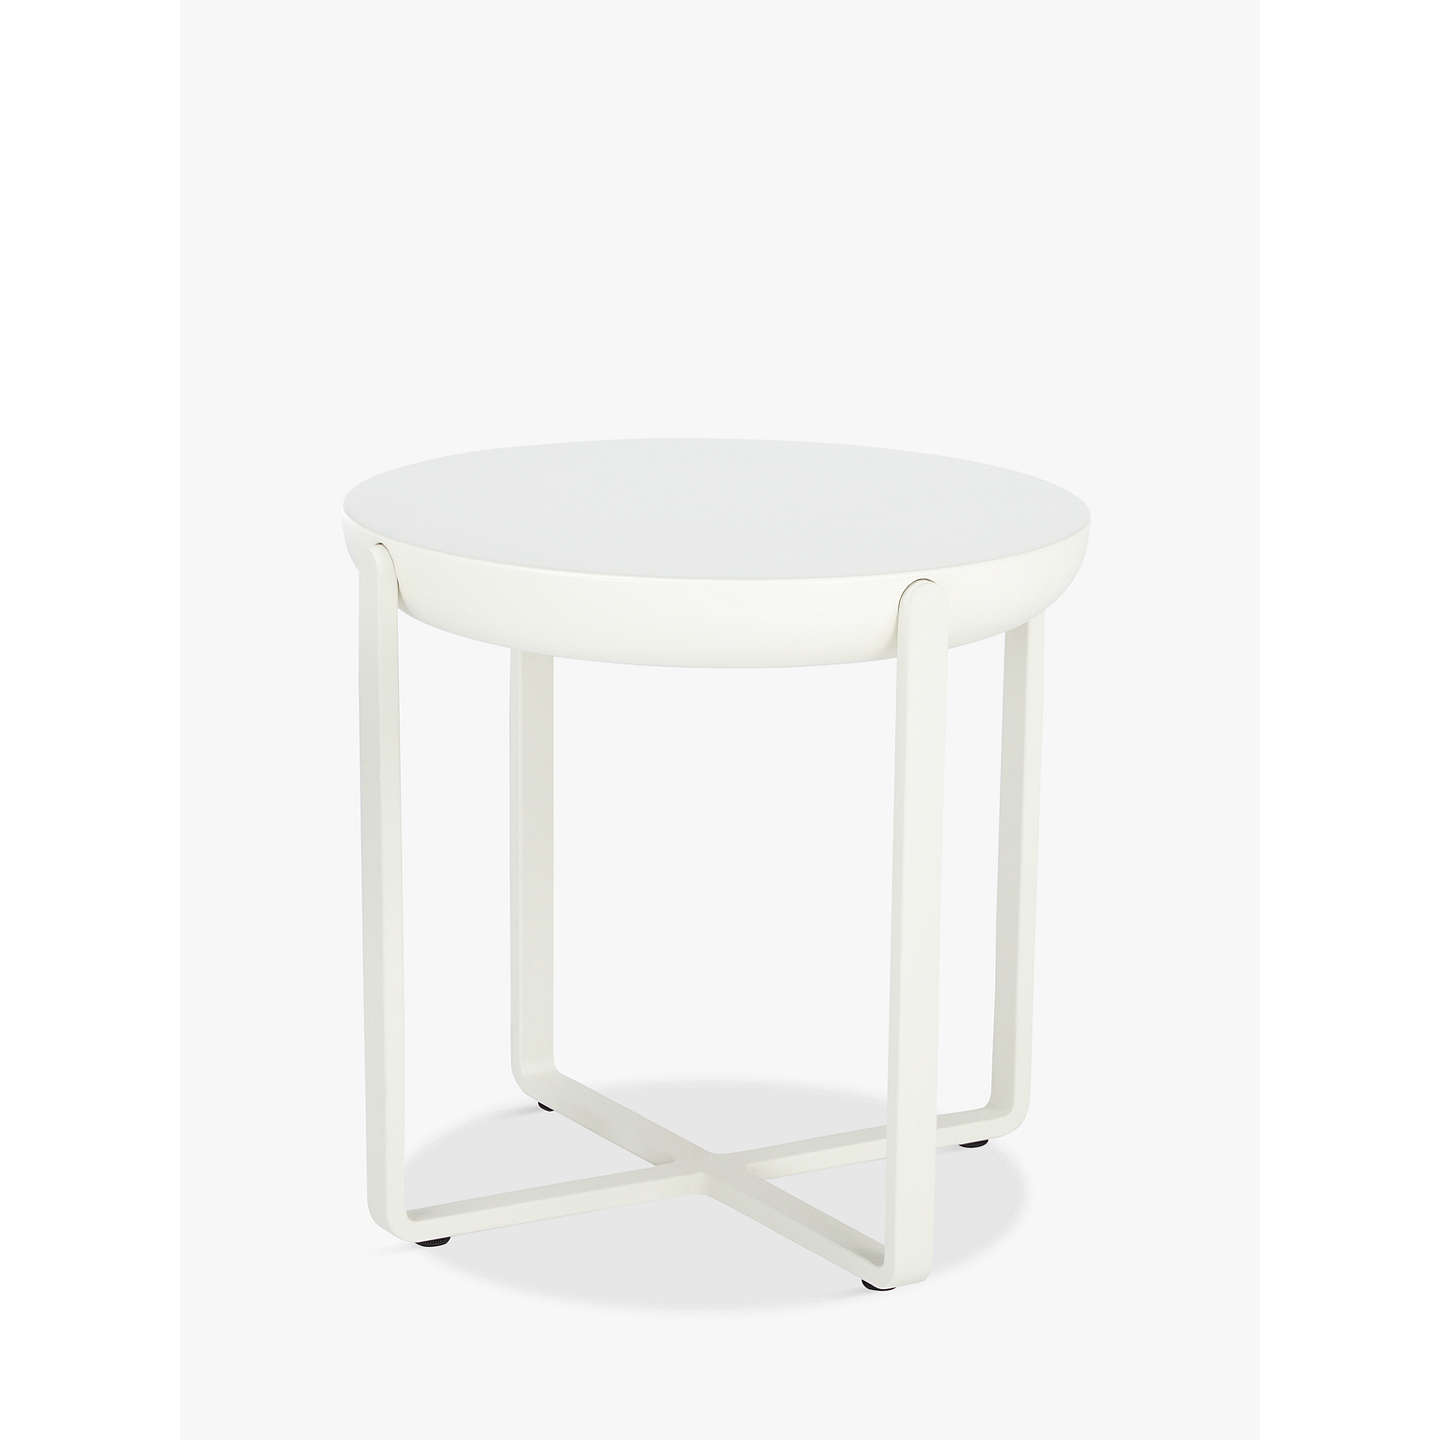 Doshi Levien For John Lewis Open Home Ballet Round Side Table At Johnlewis Com